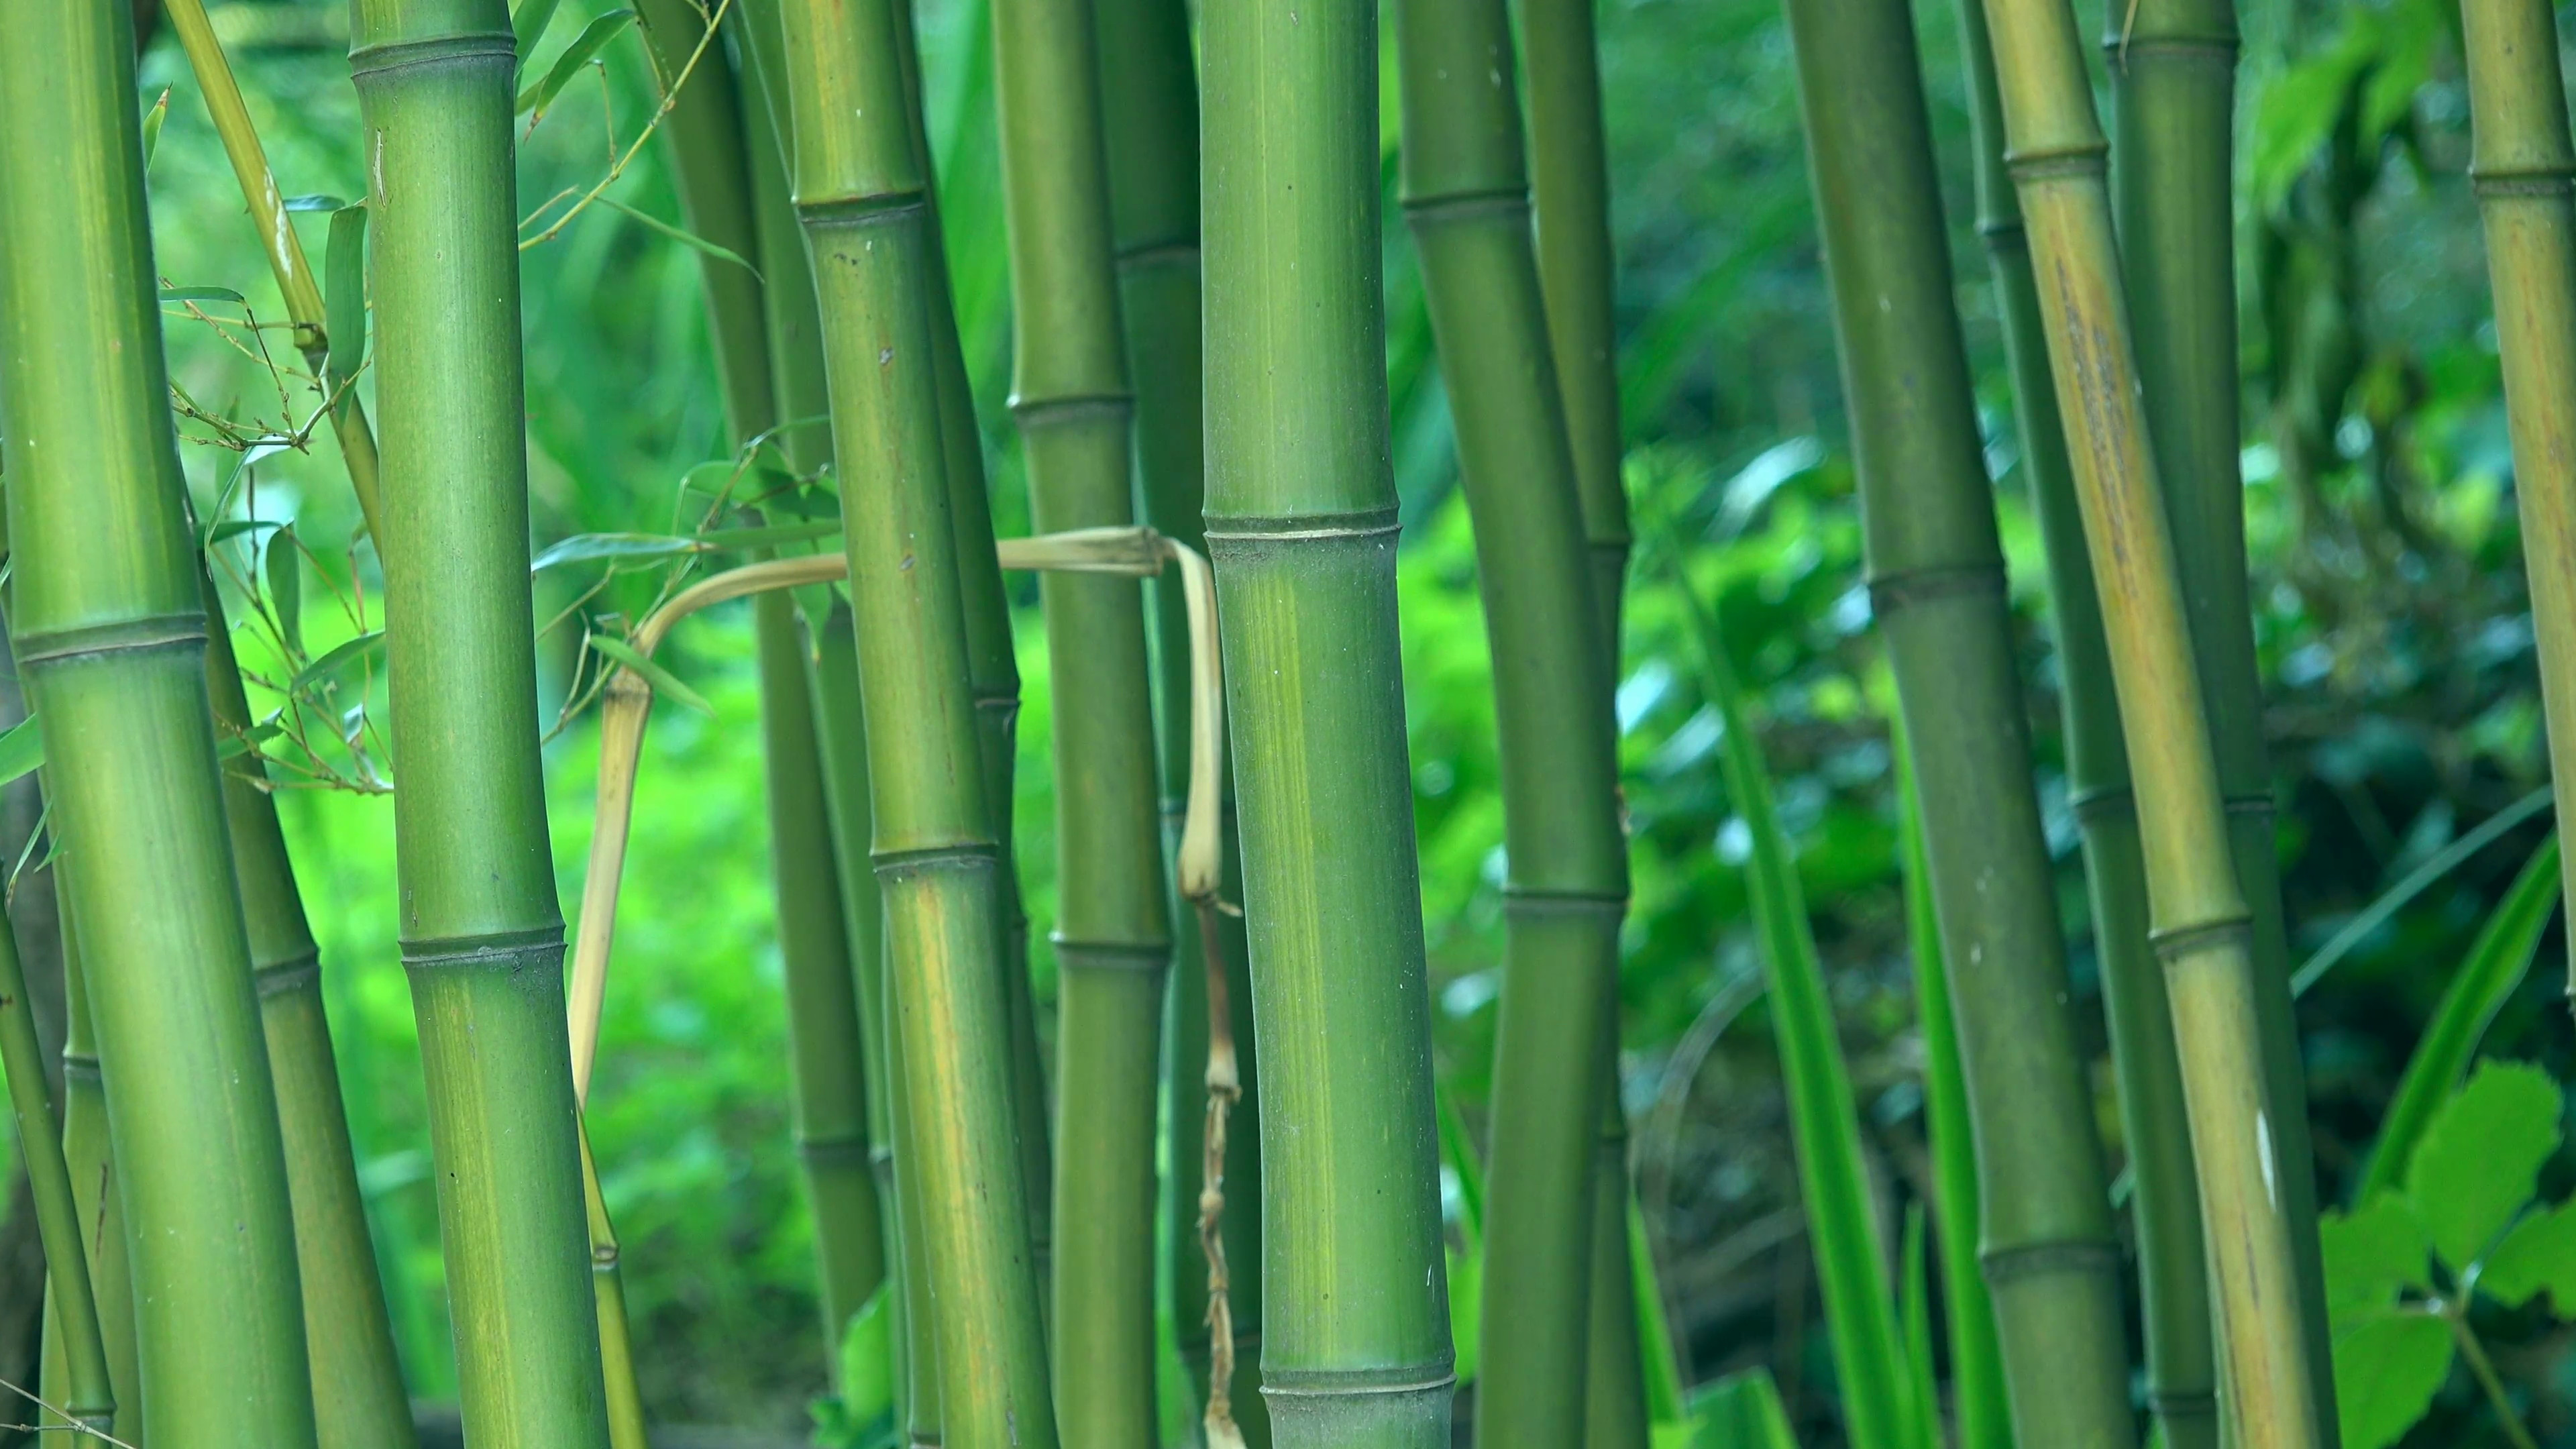 Green bamboo trees as background, bamboo forest detail, 4k uhd footage,  3840×2160, 2160p. Stock Video Footage – VideoBlocks